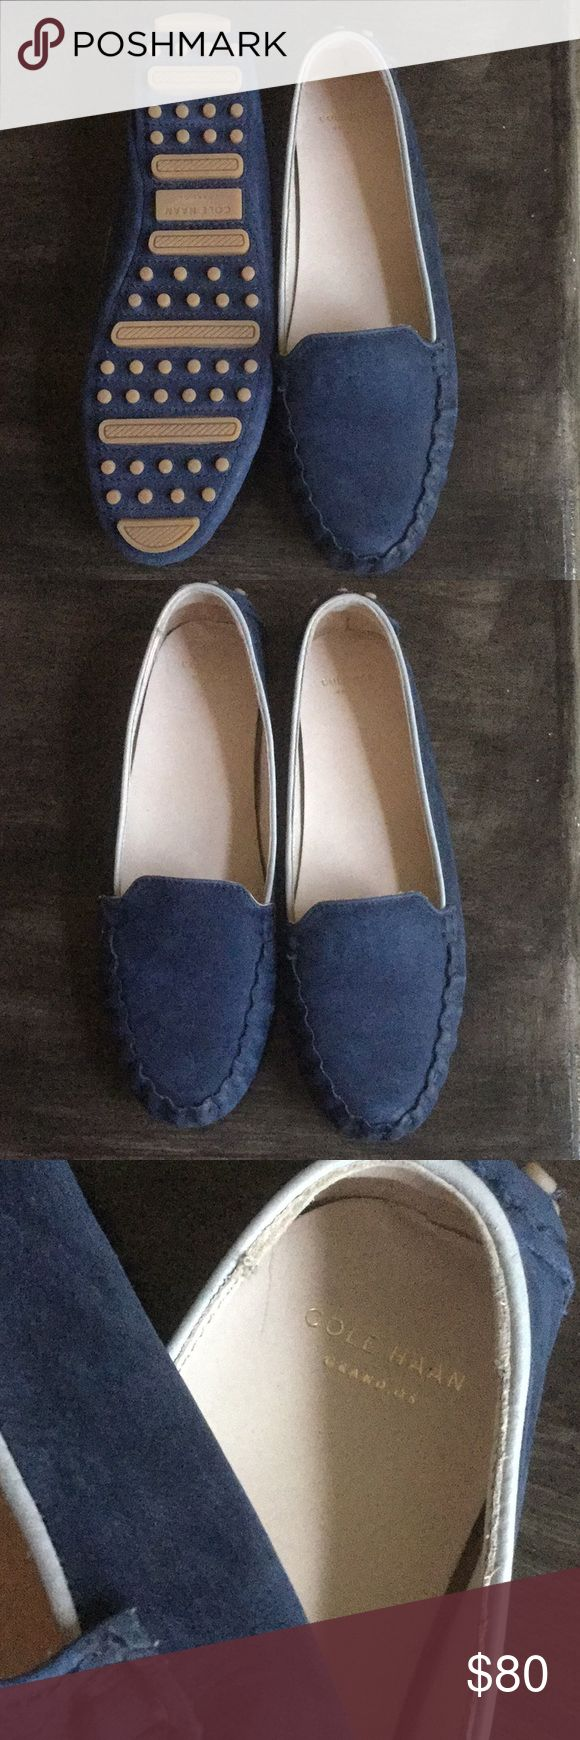 NWOTs Cole Haan newbuck drivers Gorgeous ocean blue never worn Cole Haan moccasin loafers Cole Haan Shoes Flats & Loafers